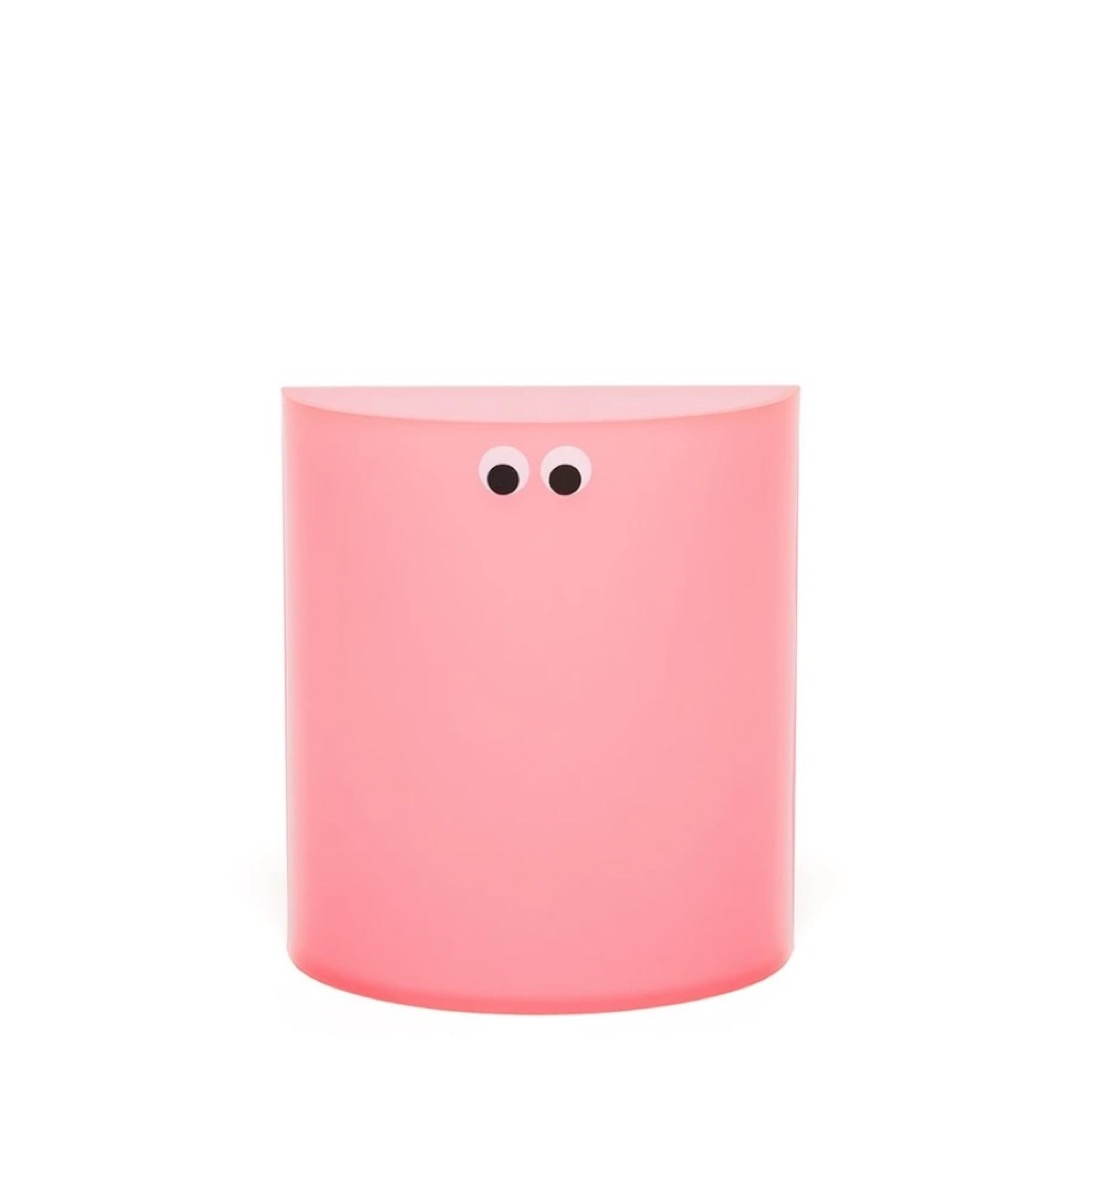 pink pencil cup with googly eyes